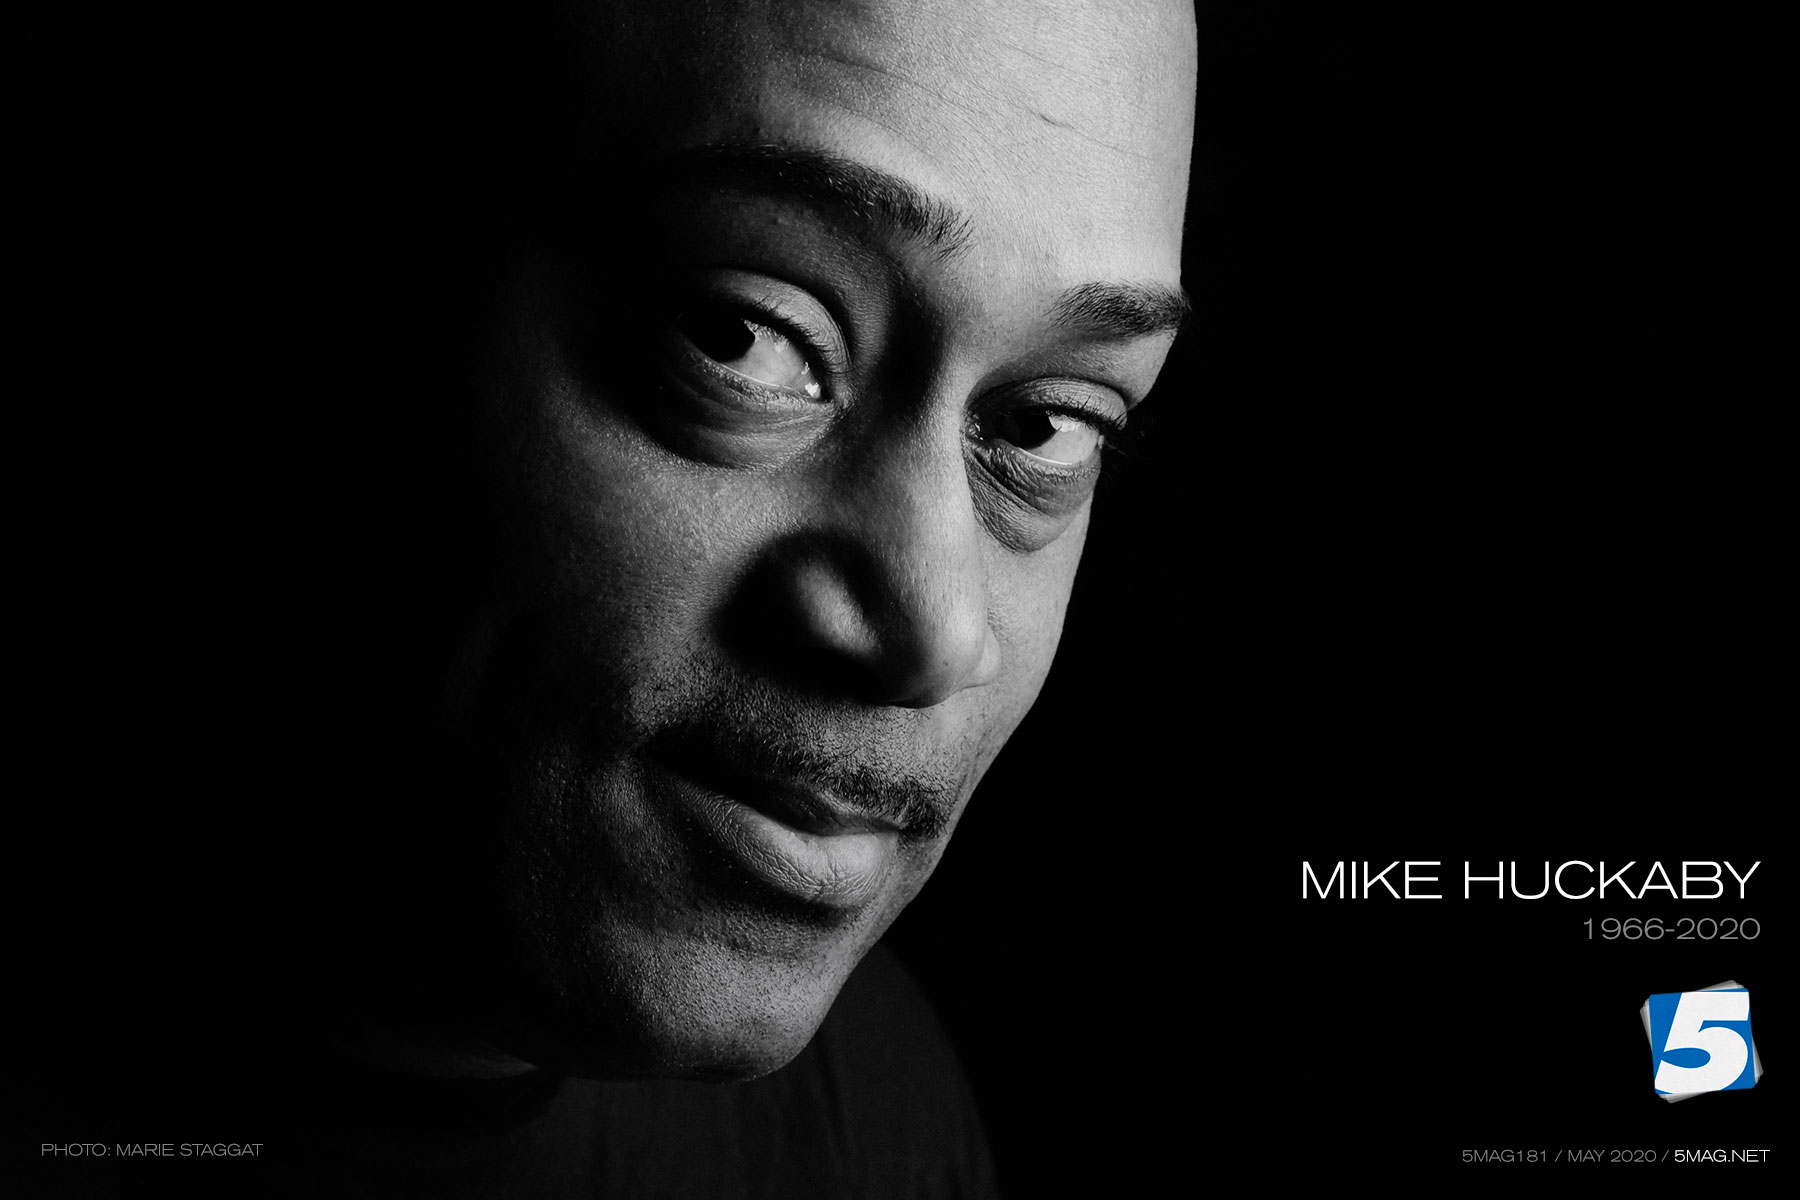 Mike Huckaby photo by Marie Staggat